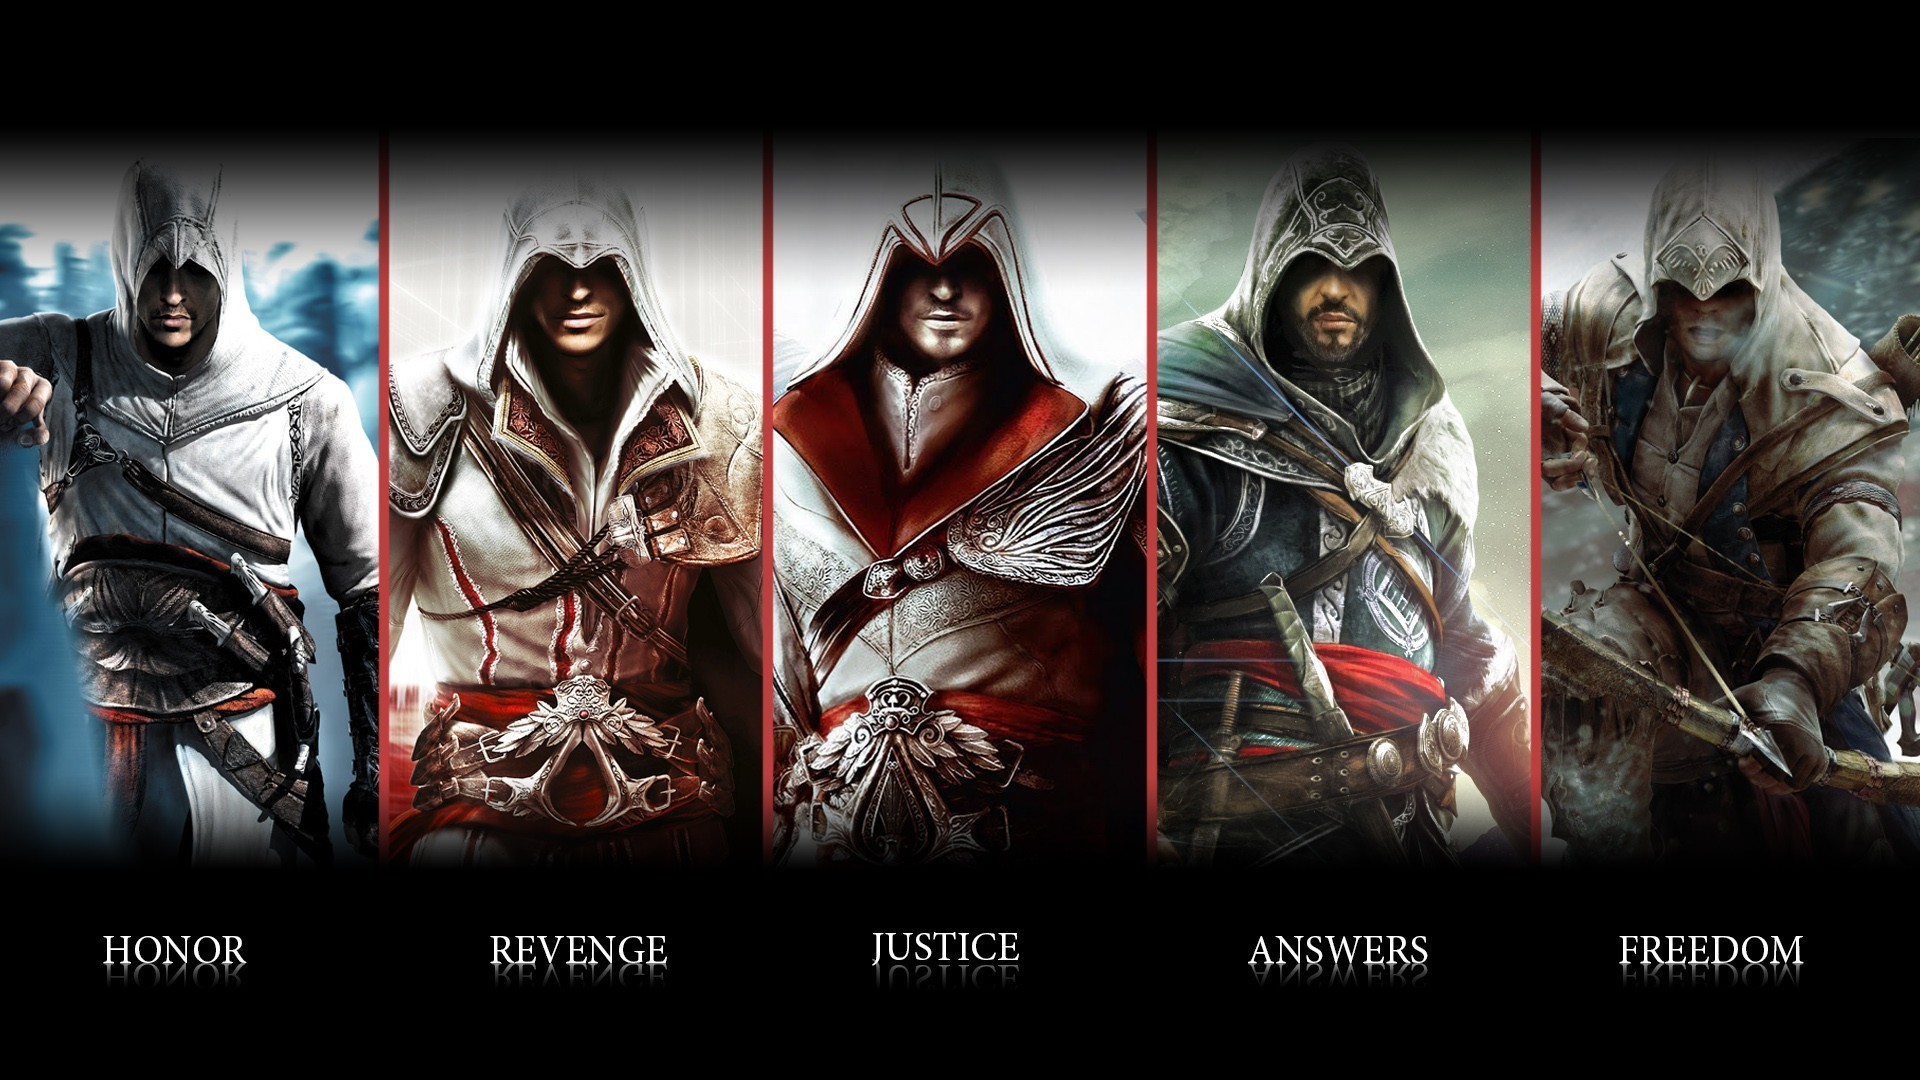 Assassins Creed Characters Image Wallpaper – https://www.gbwallpapers.com/